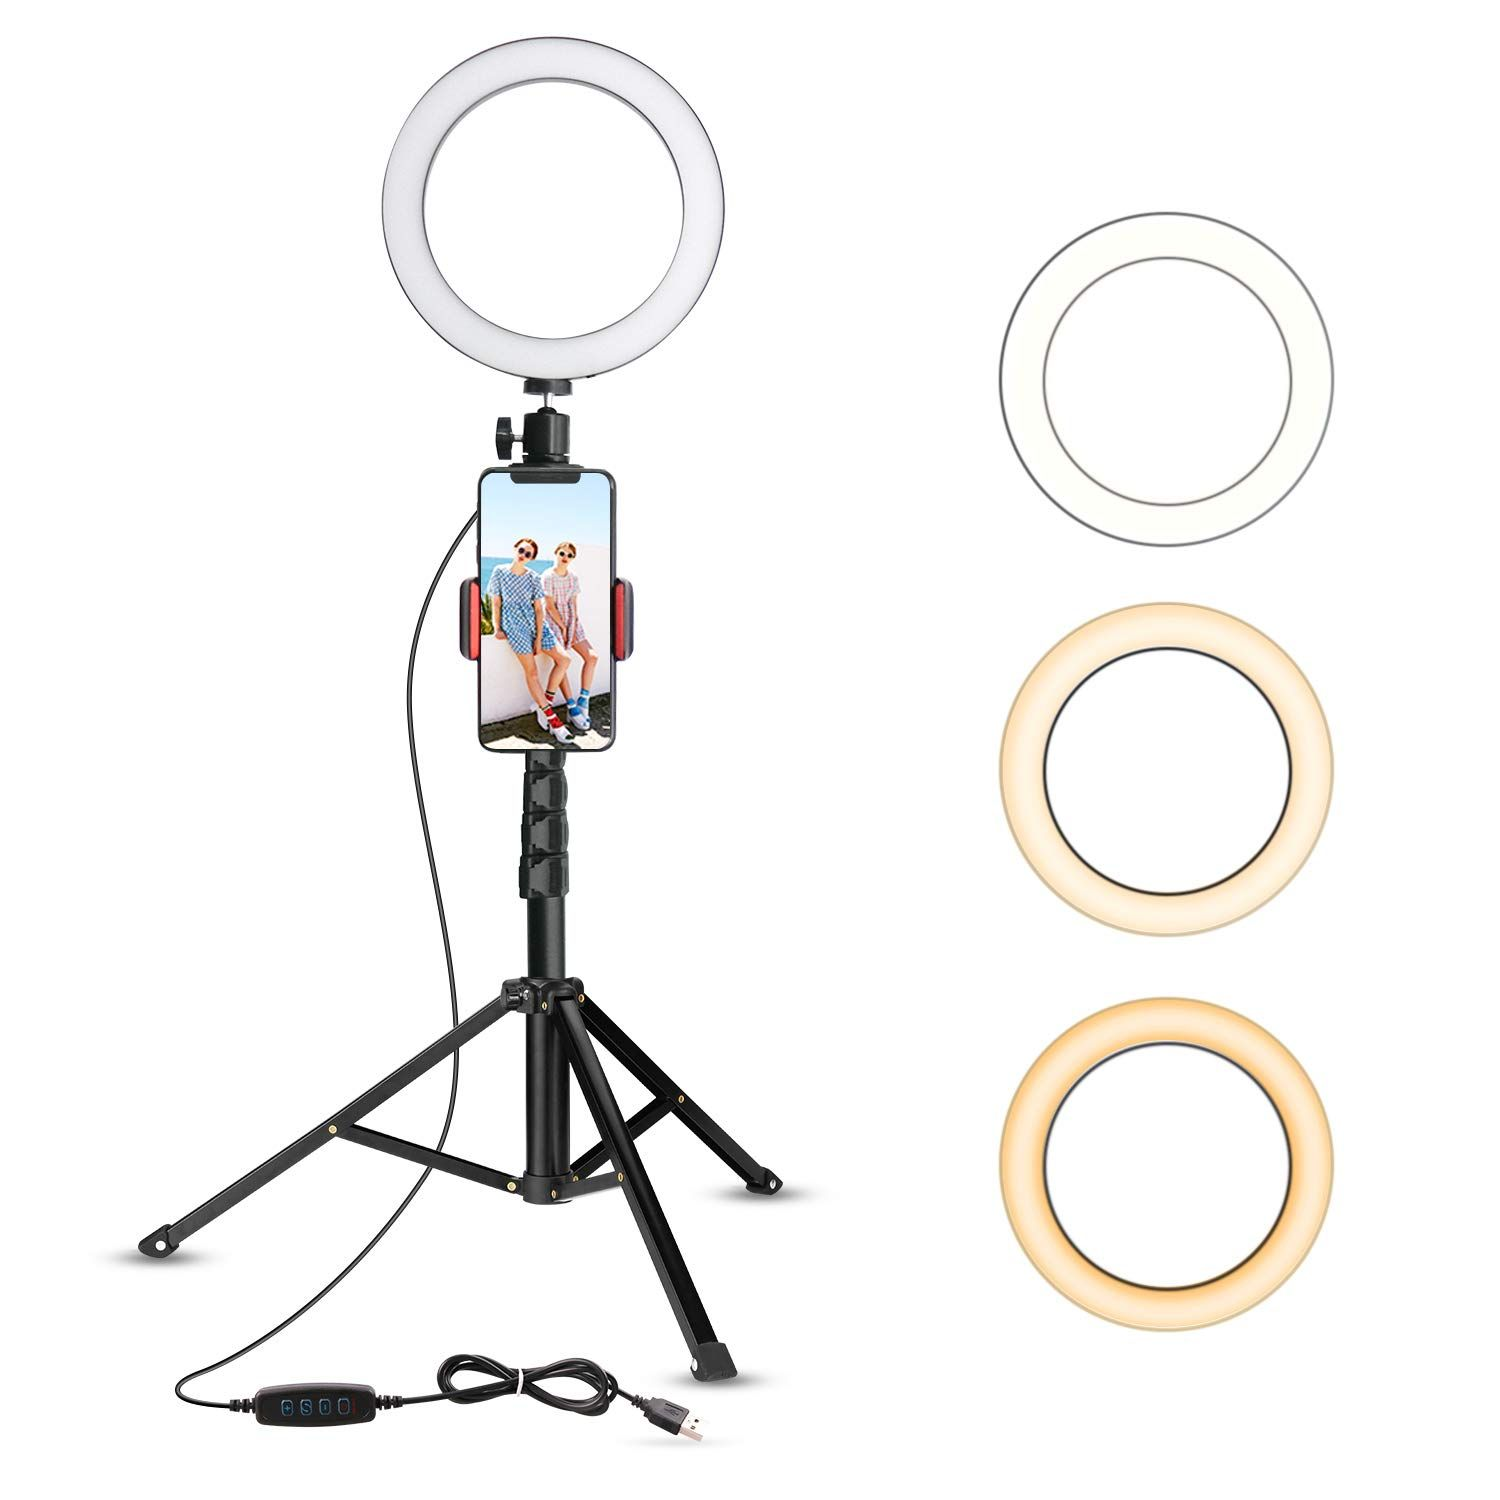 Top 5 Lighting Setups For Vloggers Filtergrade Selfie Ring Light Selfie Light Phone Tripod